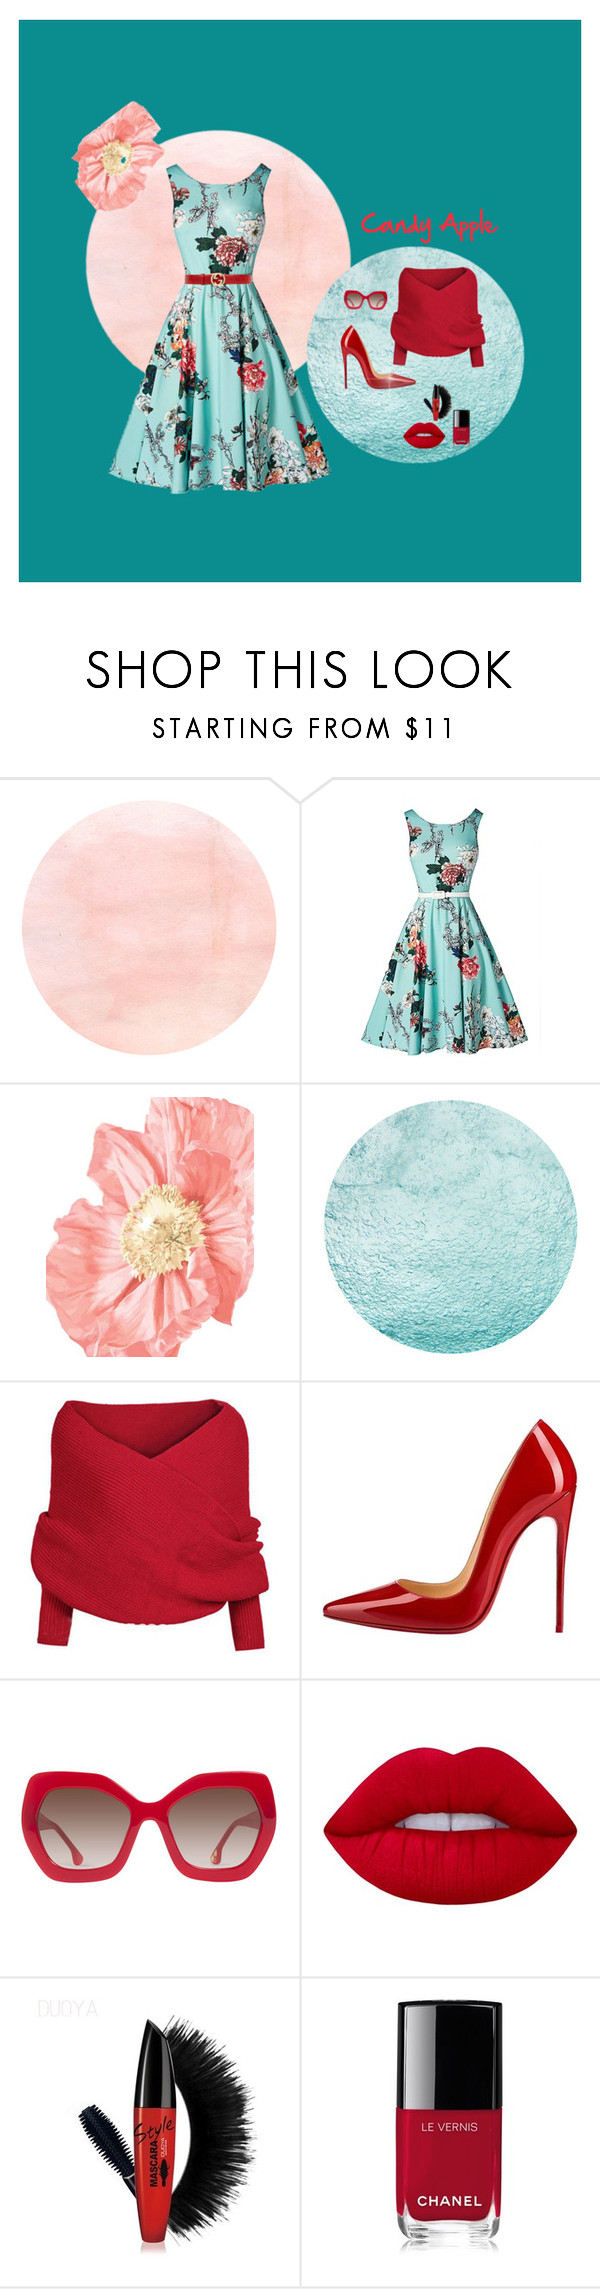 """""""Untitled #13"""" by sharonvandoesburg ❤ liked on Polyvore featuring WithChic, Christian Louboutin, Alice + Olivia, Lime Crime, Chanel and Gucci"""